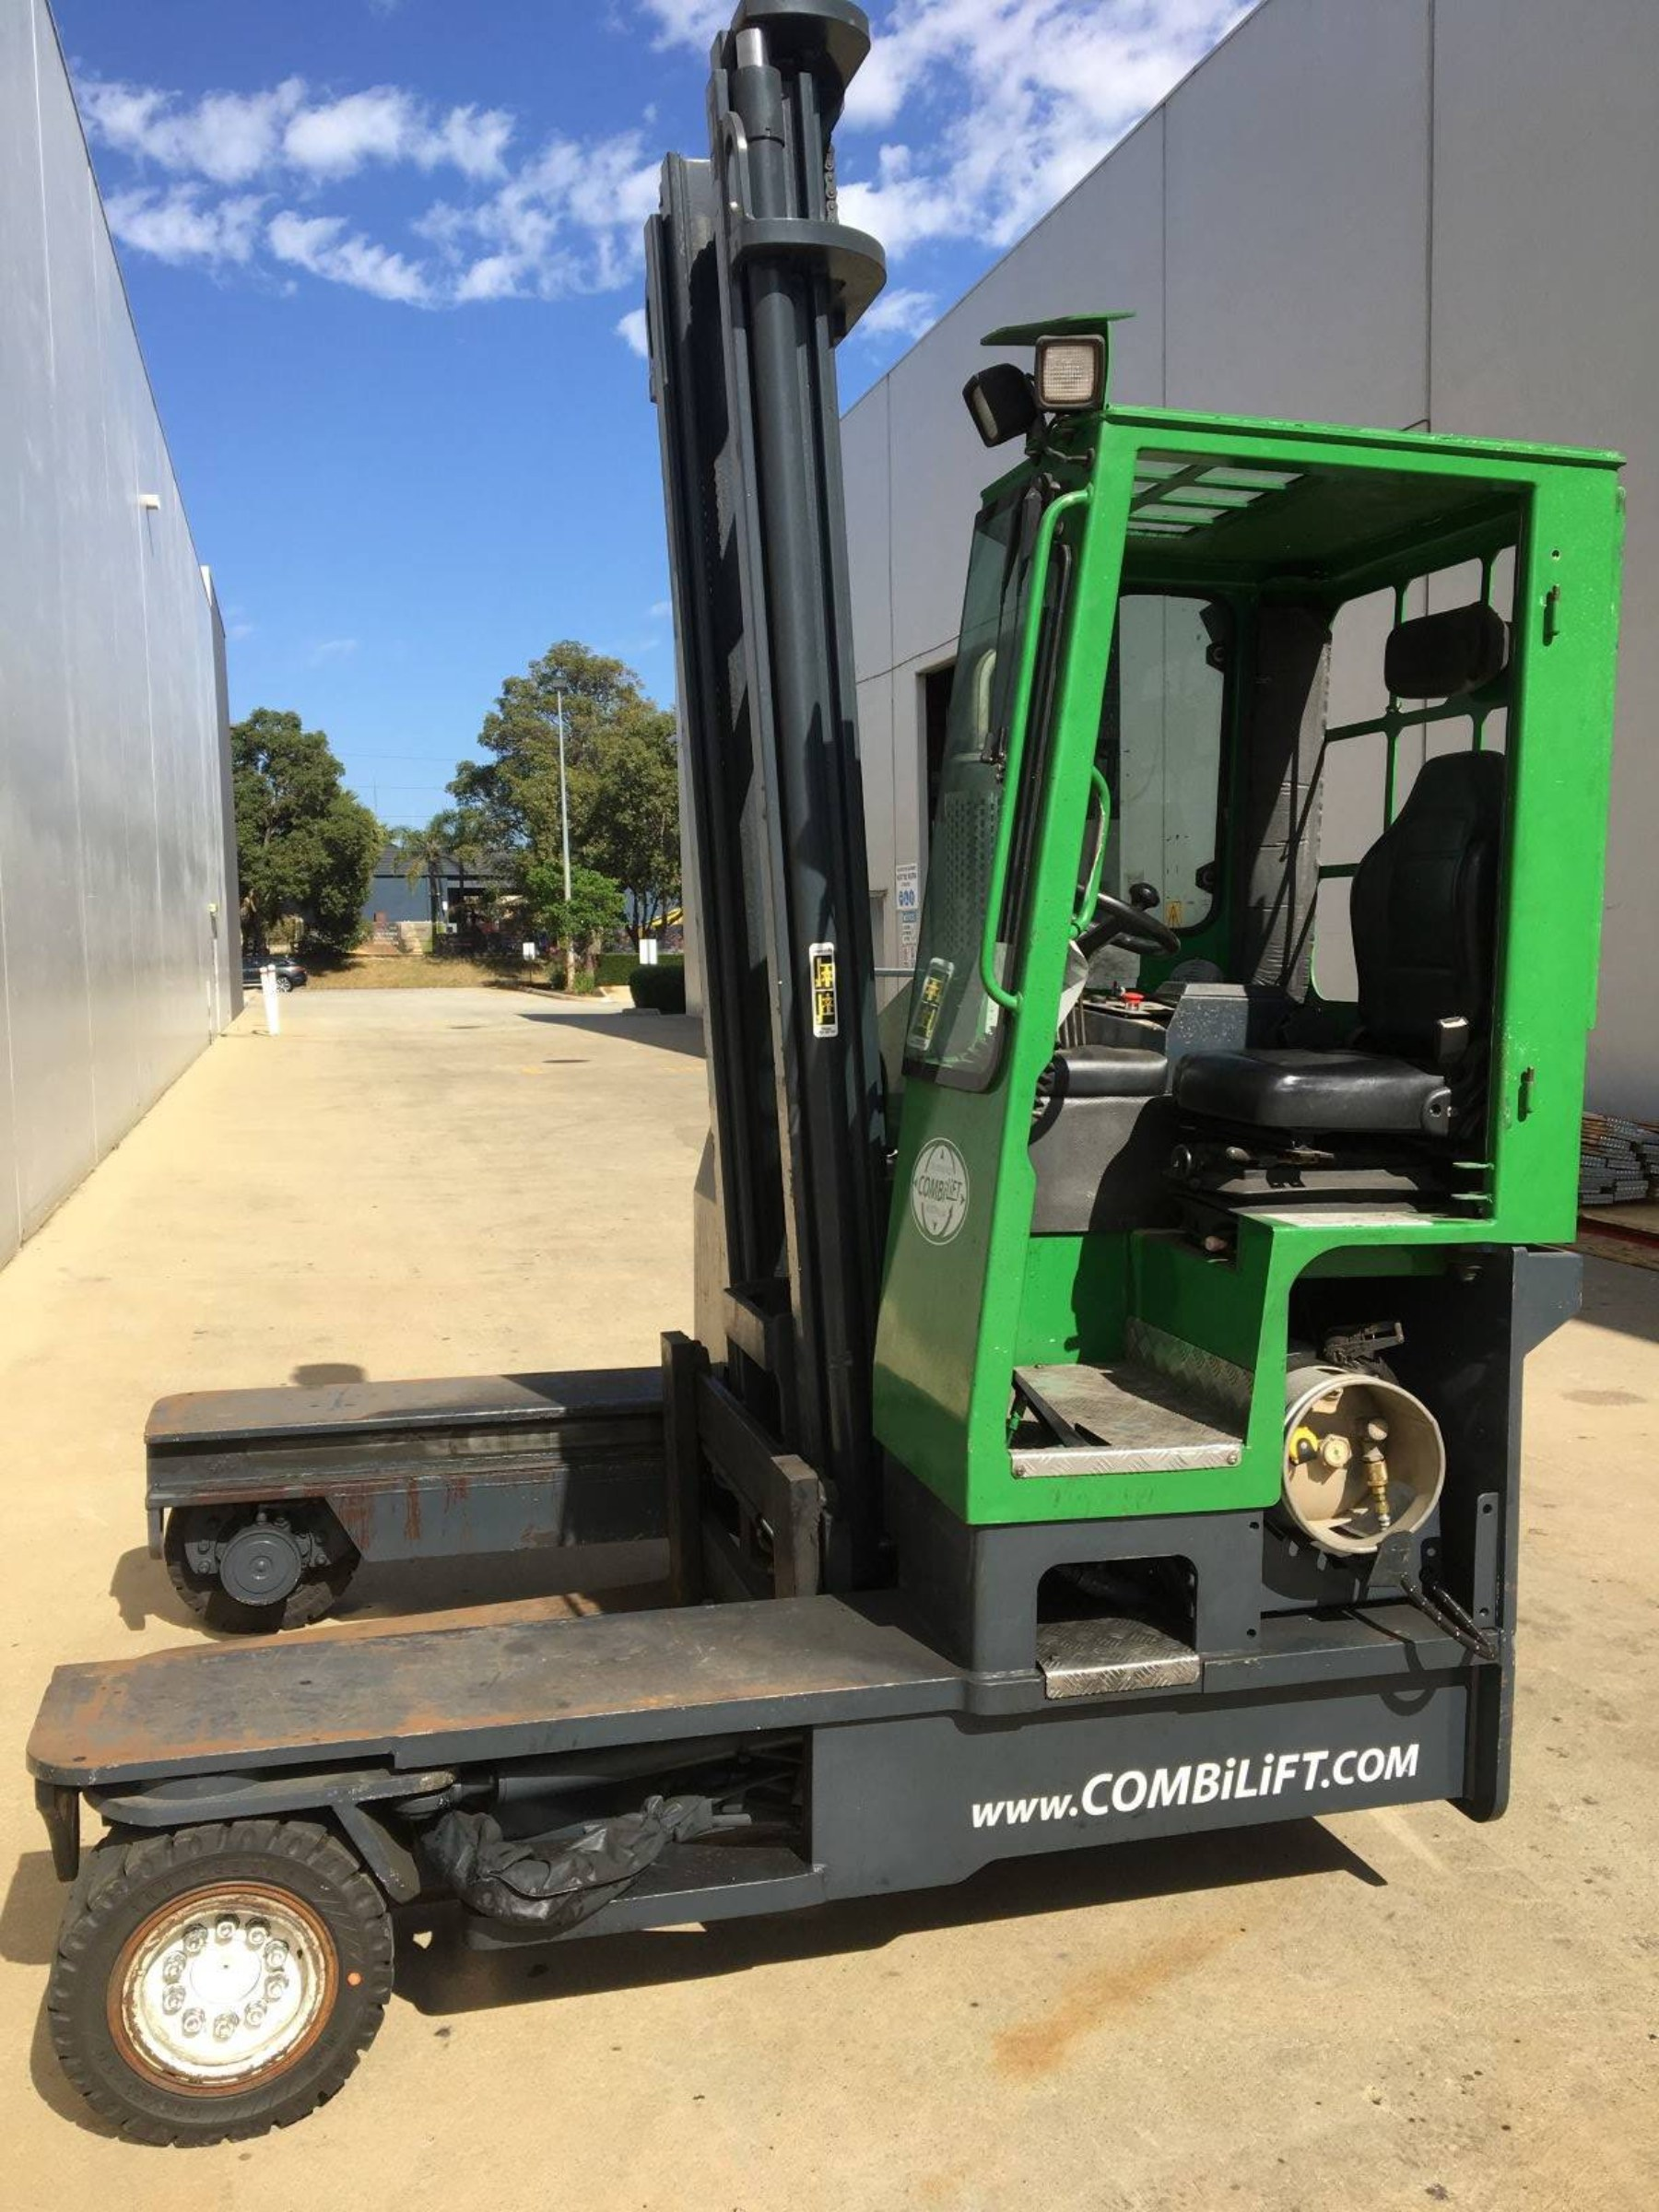 Used forklift: COMBILIFT C4000